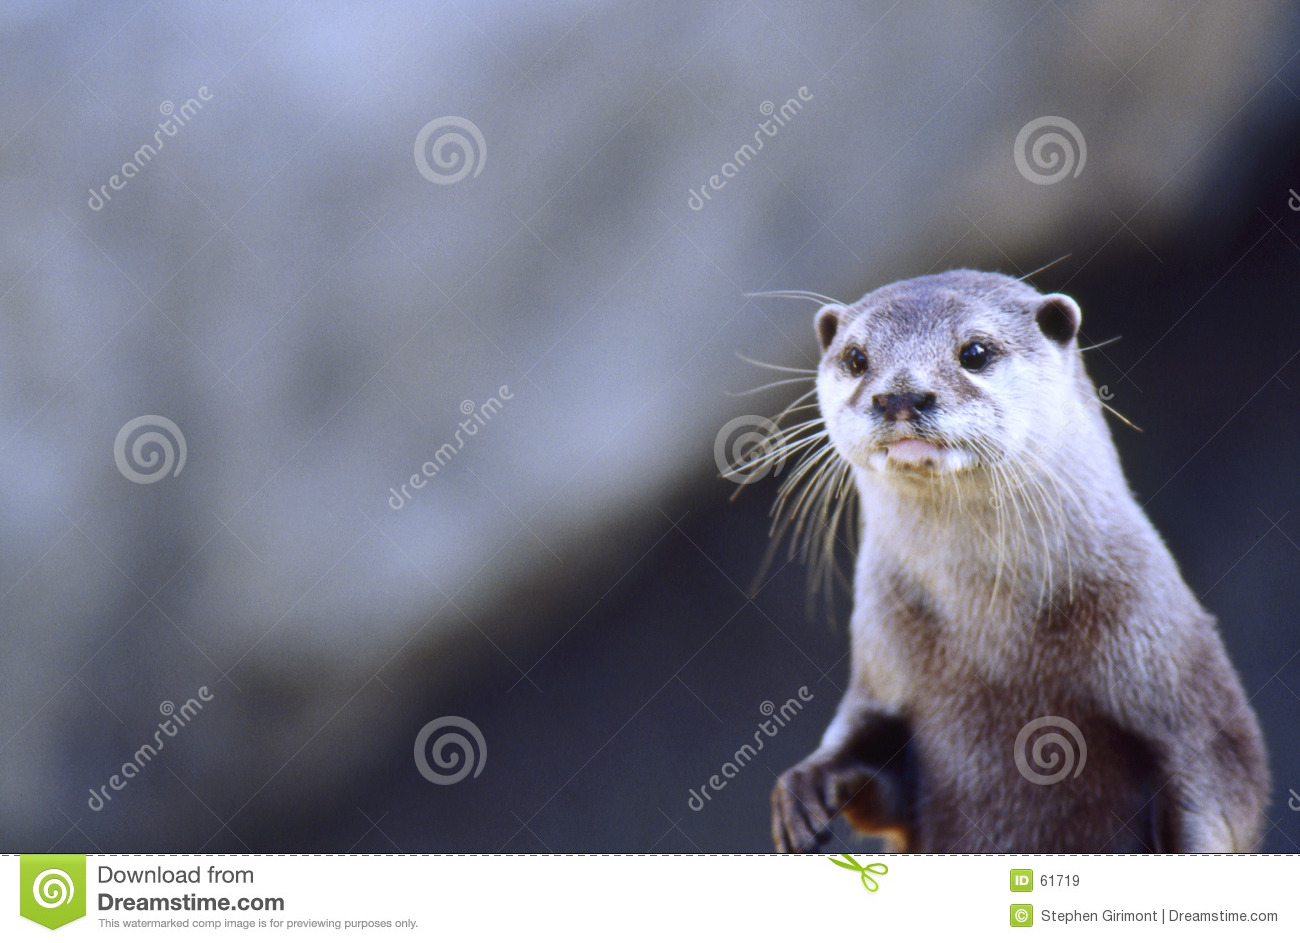 Northern River Otter (Lutra canadensis)